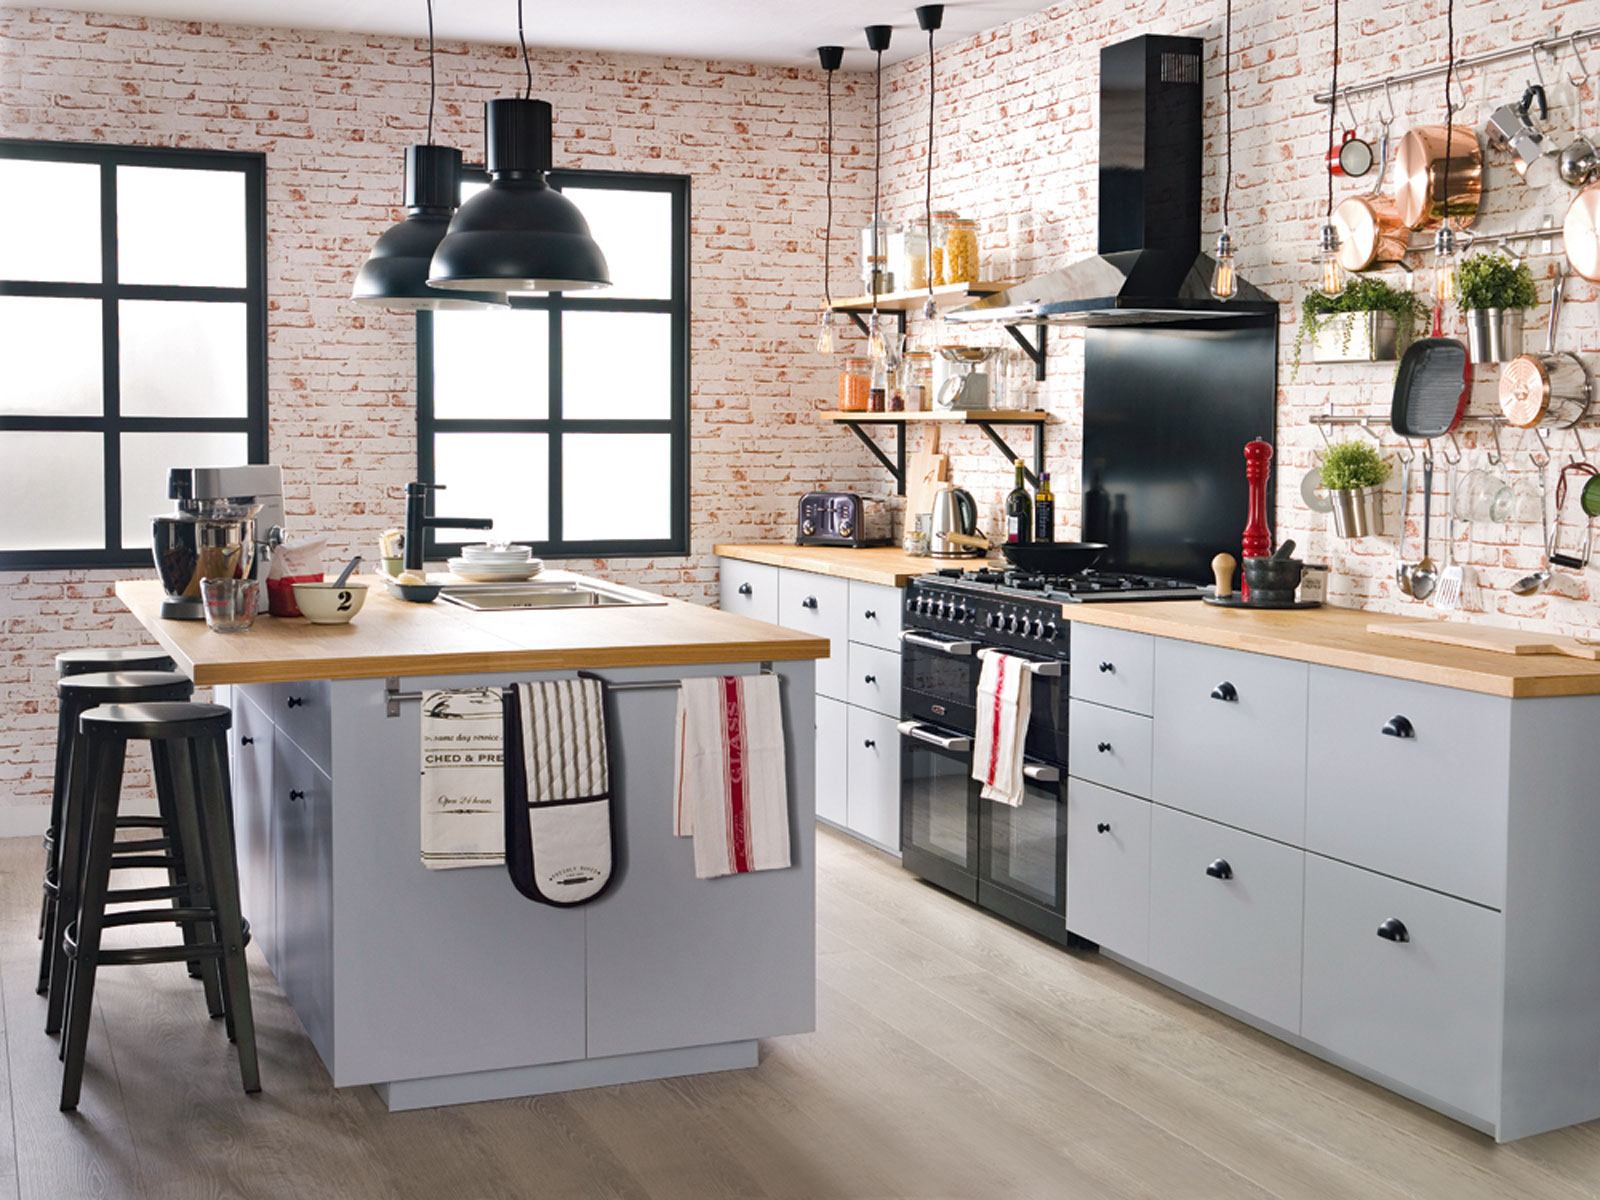 Industrial kitchen  interior. Designed for Ideal Home by Sophie Robisnon